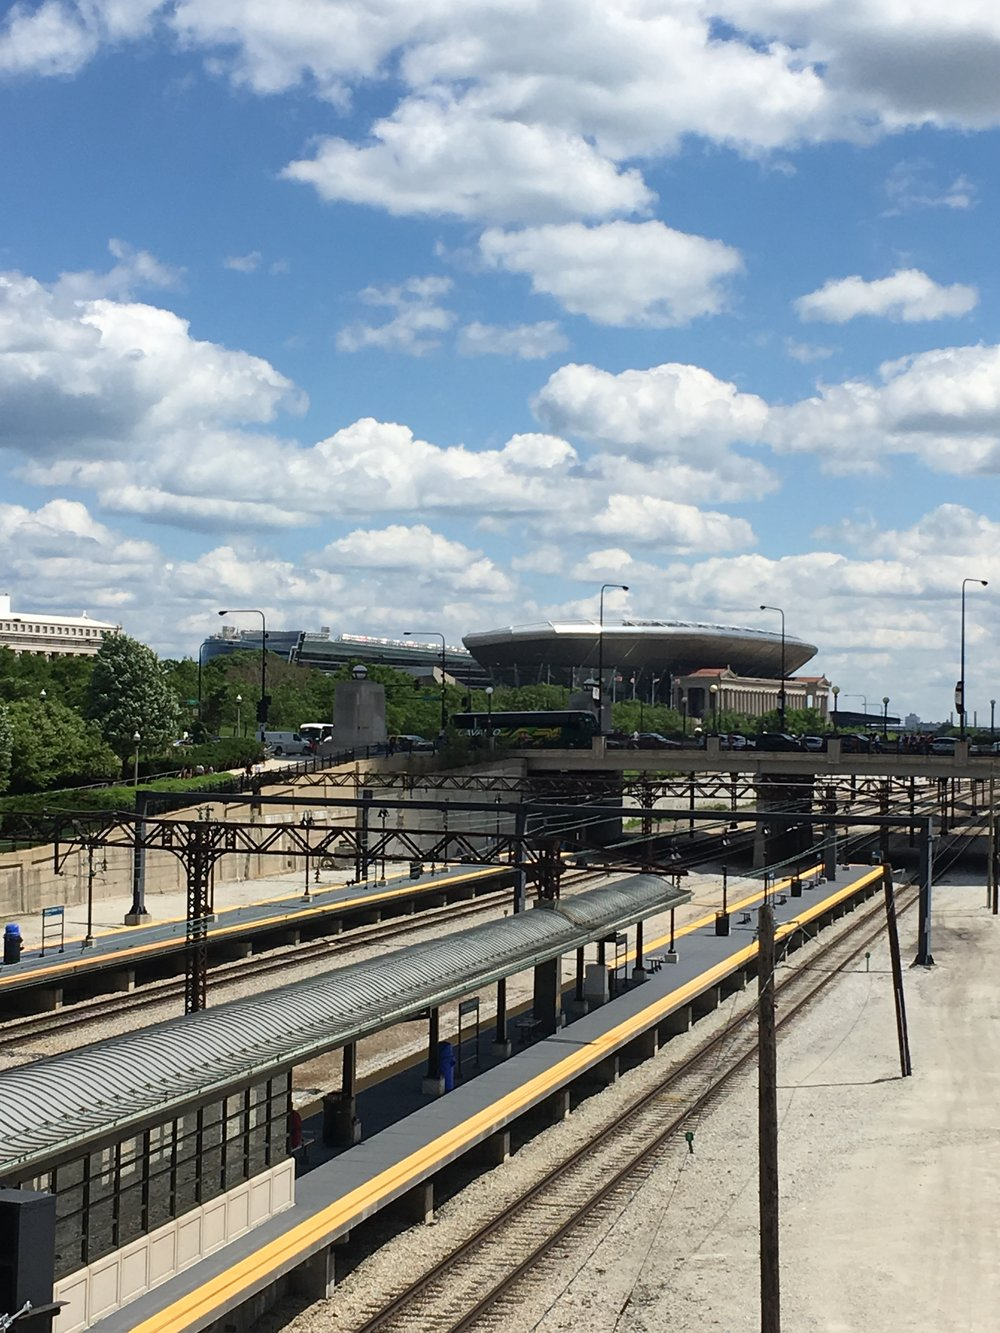 Approaching Soldier Field, Chicago